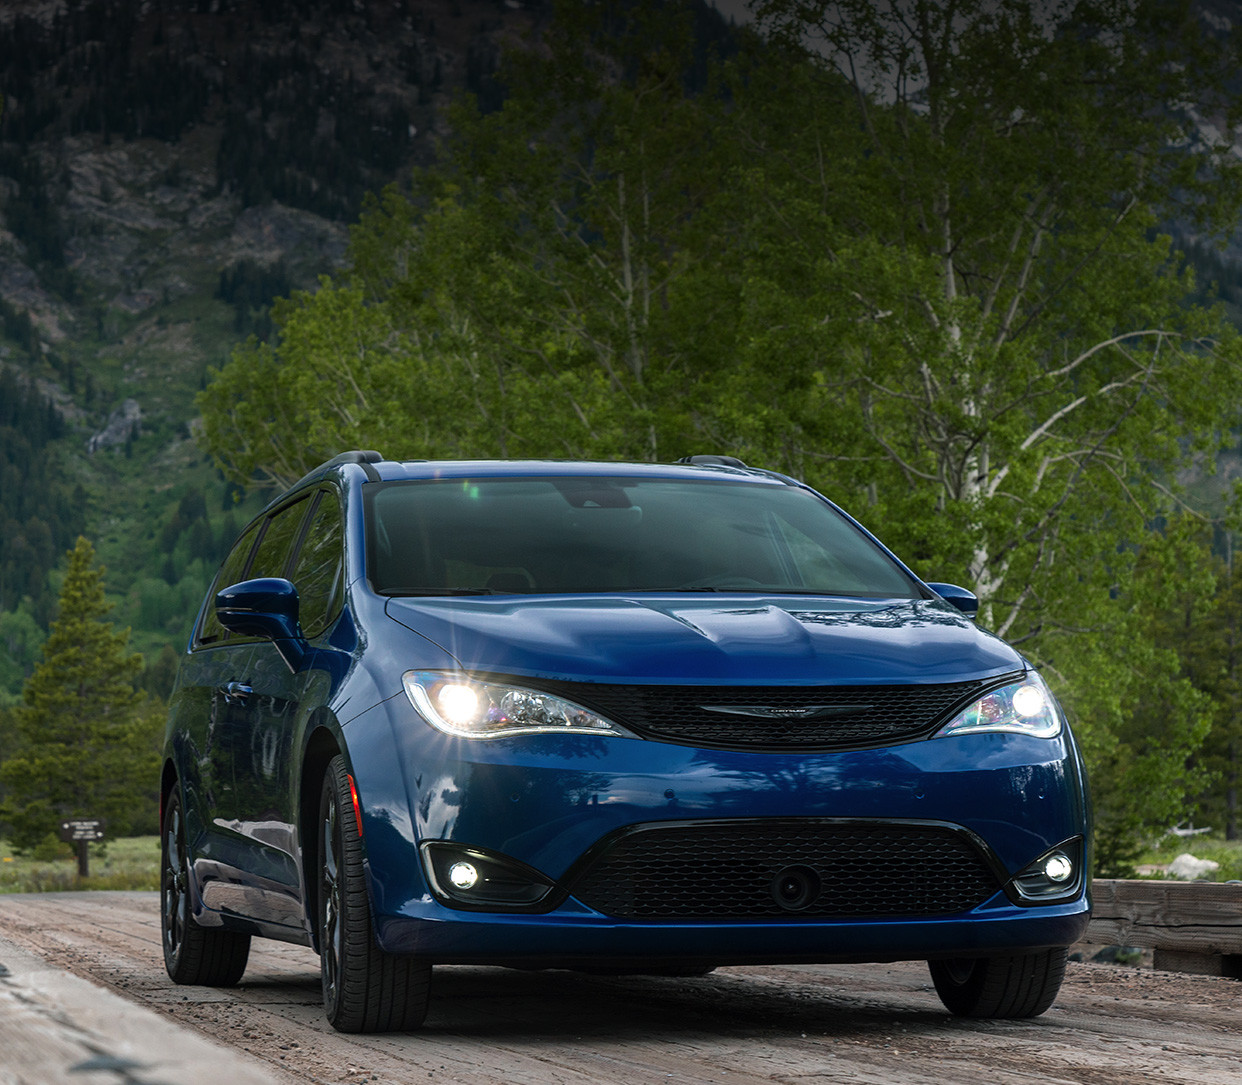 Chrysler Pacifica Limited Edition: 2020 Chrysler Pacifica Minivan